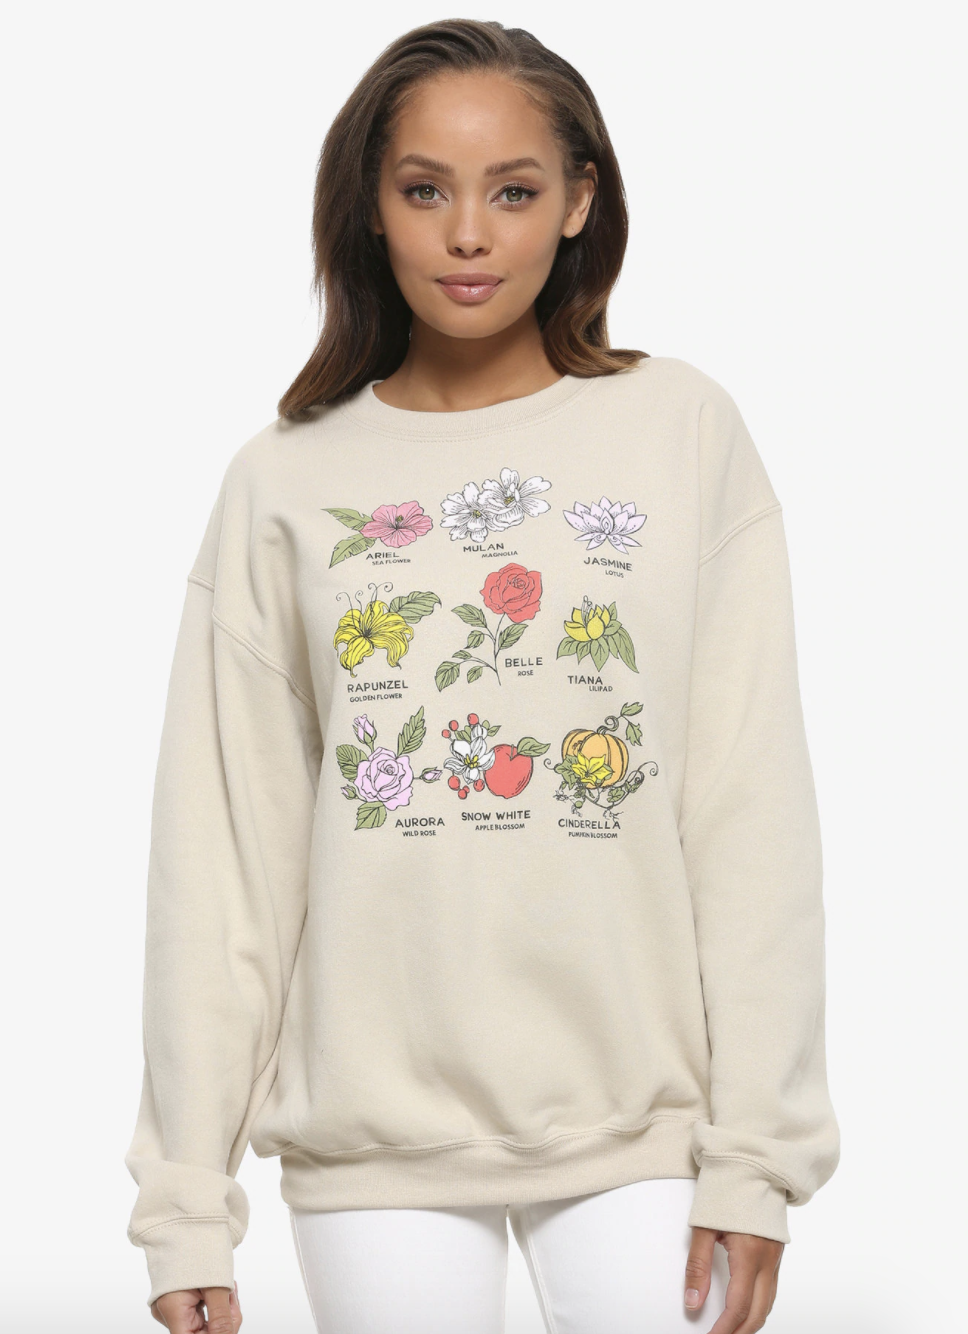 a model in a tan sweatshirt with different flowers to represent each princess and the princess' name under it